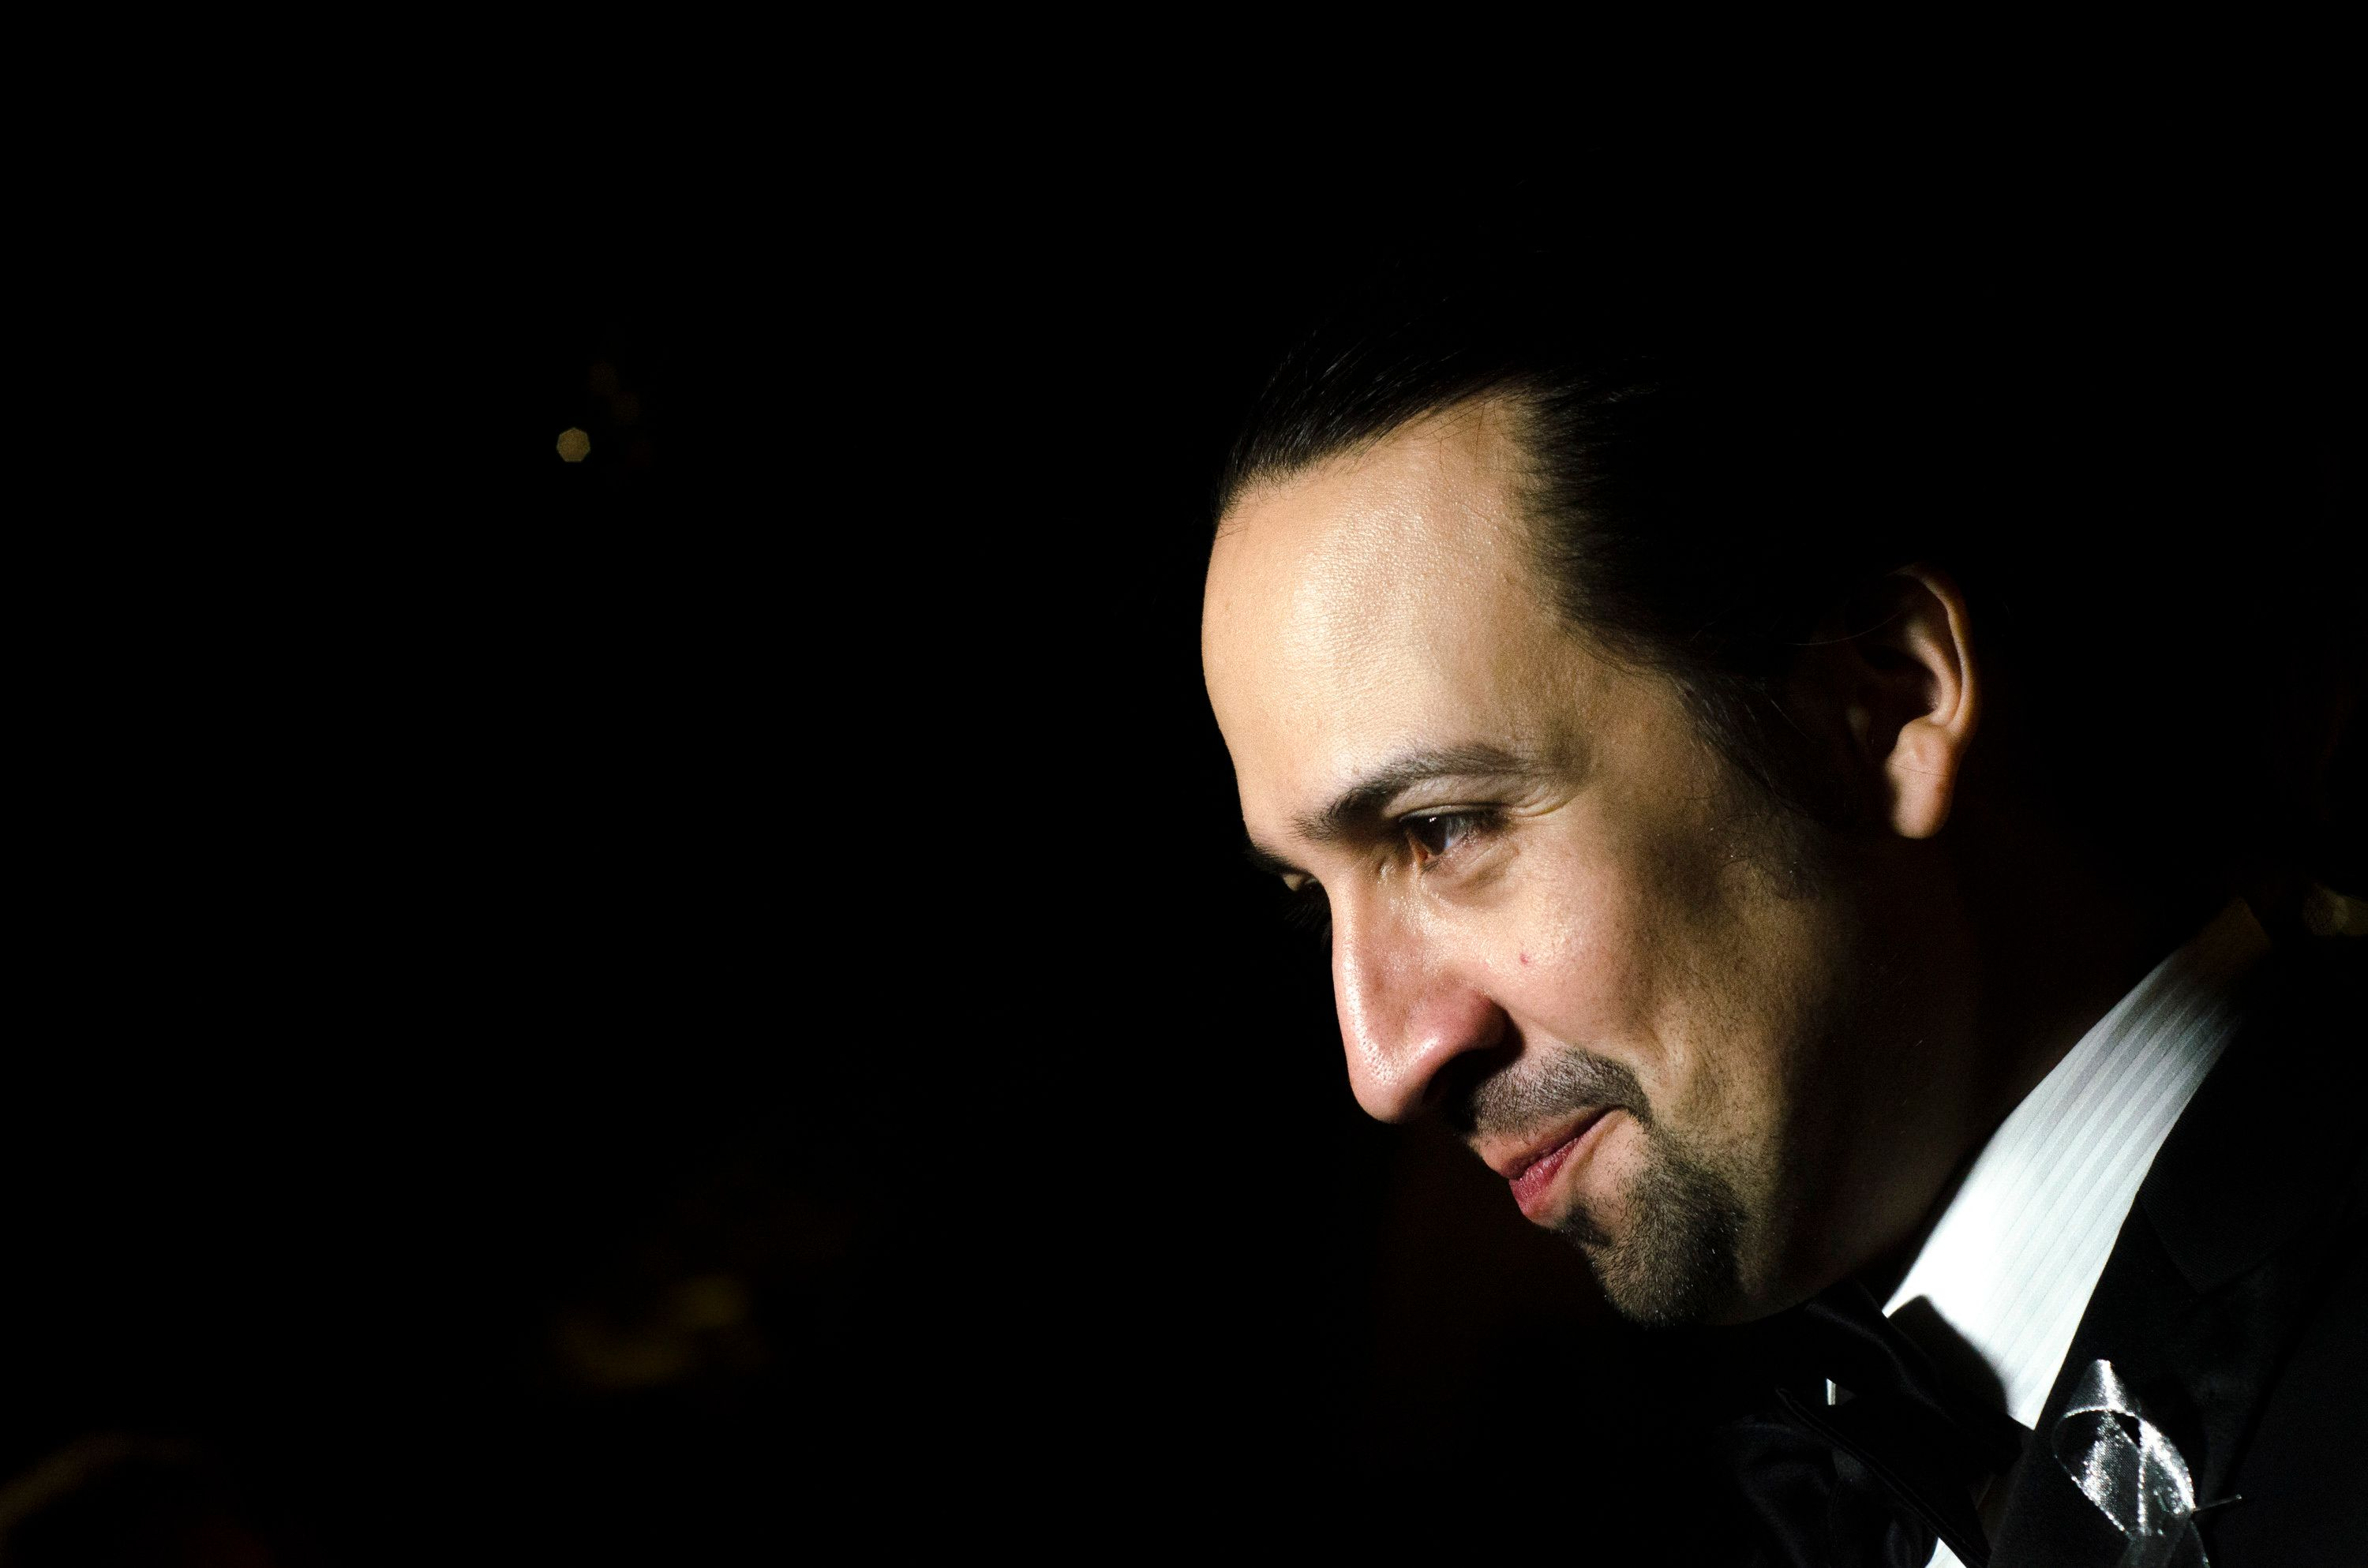 NEW YORK, NY - JUNE 12:  Lin-Manuel Miranda poses for photographers during the 'Hamilton' Tony Awards After Party at Tavern On The Green on June 12, 2016 in New York City. (Kris Connor/Getty Images)